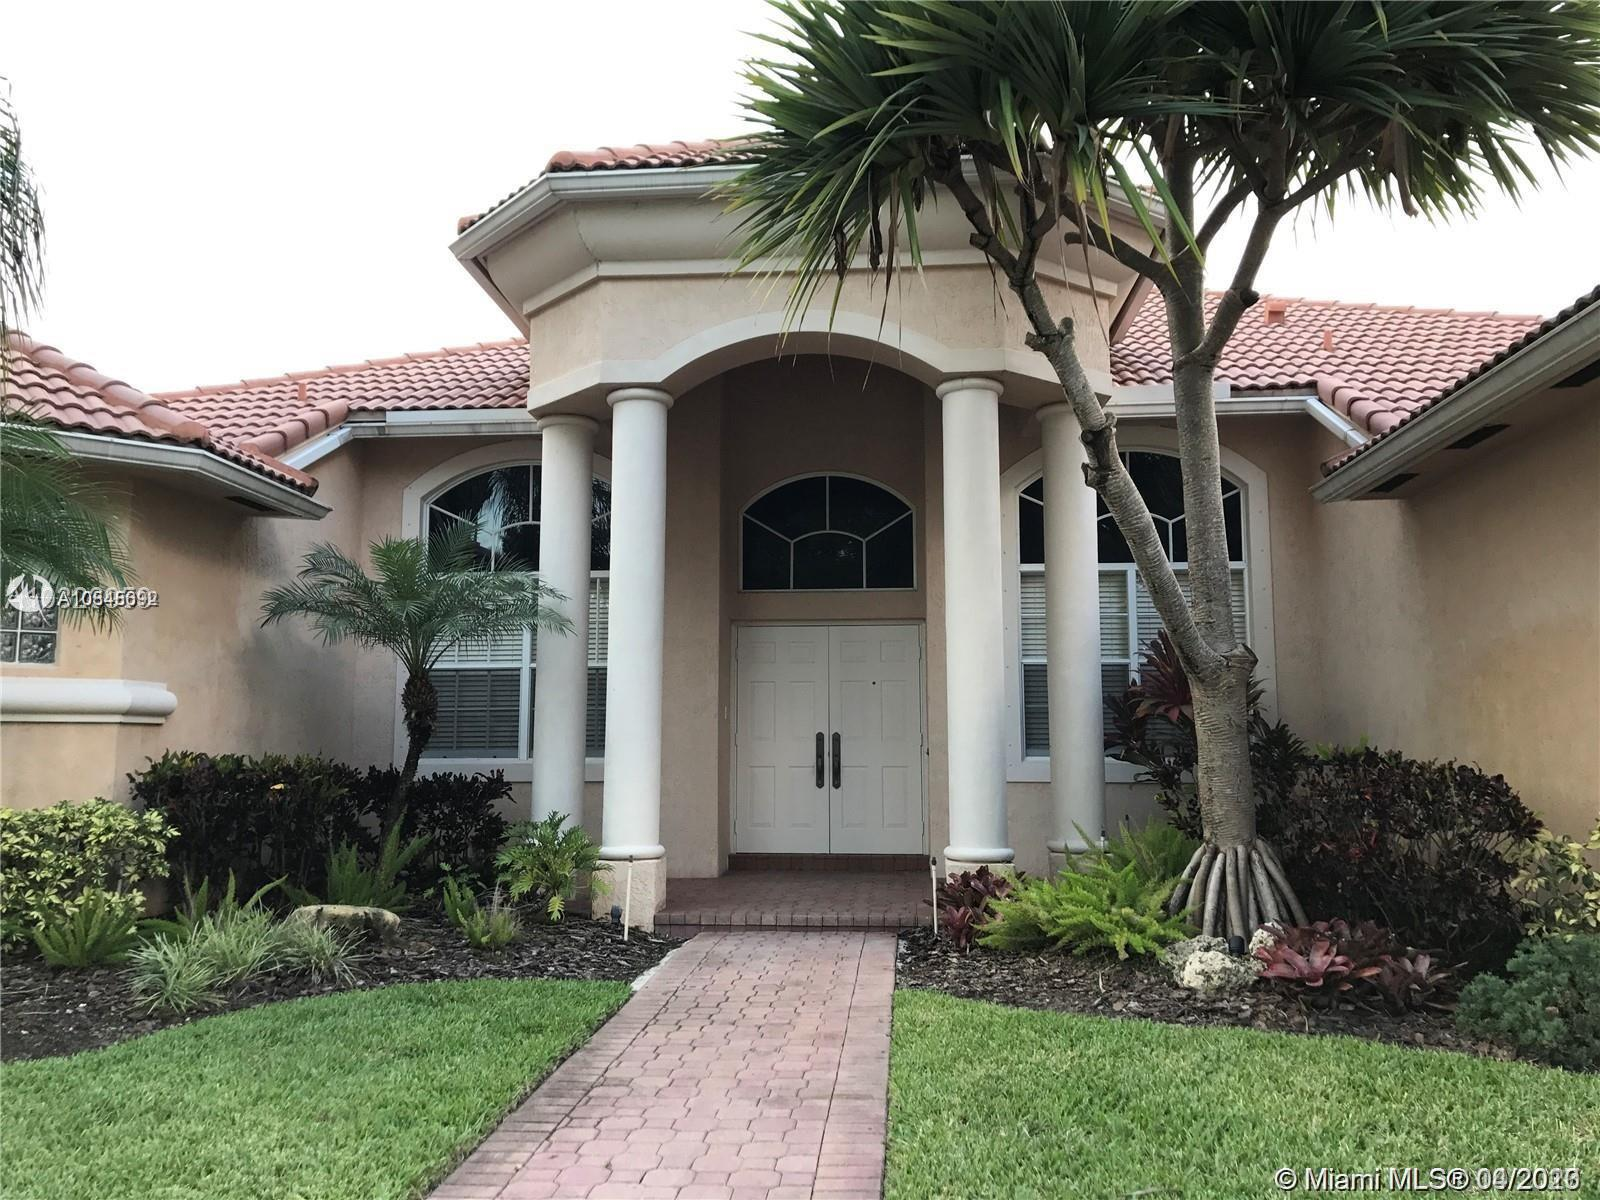 "BEAUTIFUL MONTEREY MODEL IN THE SOUGHT AFTER COMMUNITY OF ""PEMBROKE FALLS"".  GREAT LOCATION, CLOSE TO I-75, 595, SAWGRASS.  GREAT SCHOOLS, MALLS, RESTAURANTS, HOSPITALS, AND MUCH MORE.